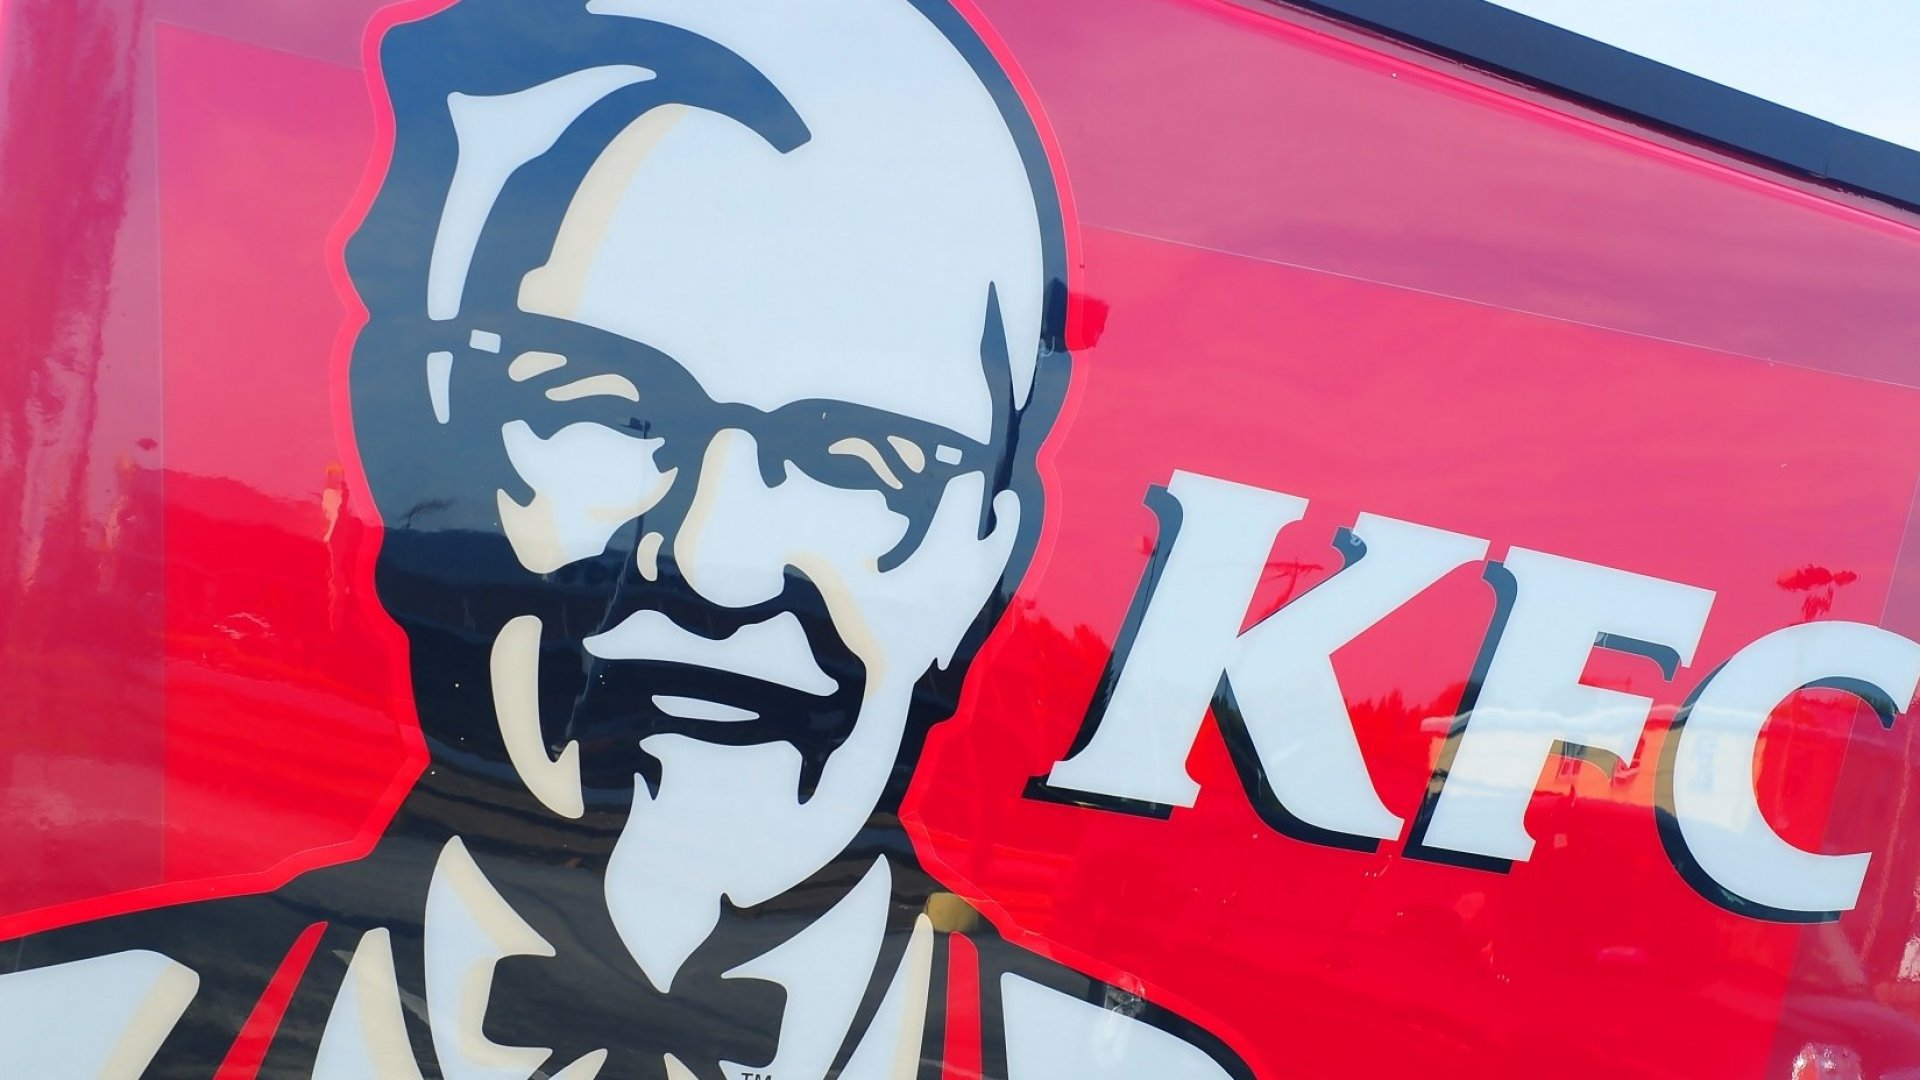 The colonel can sleep well again.